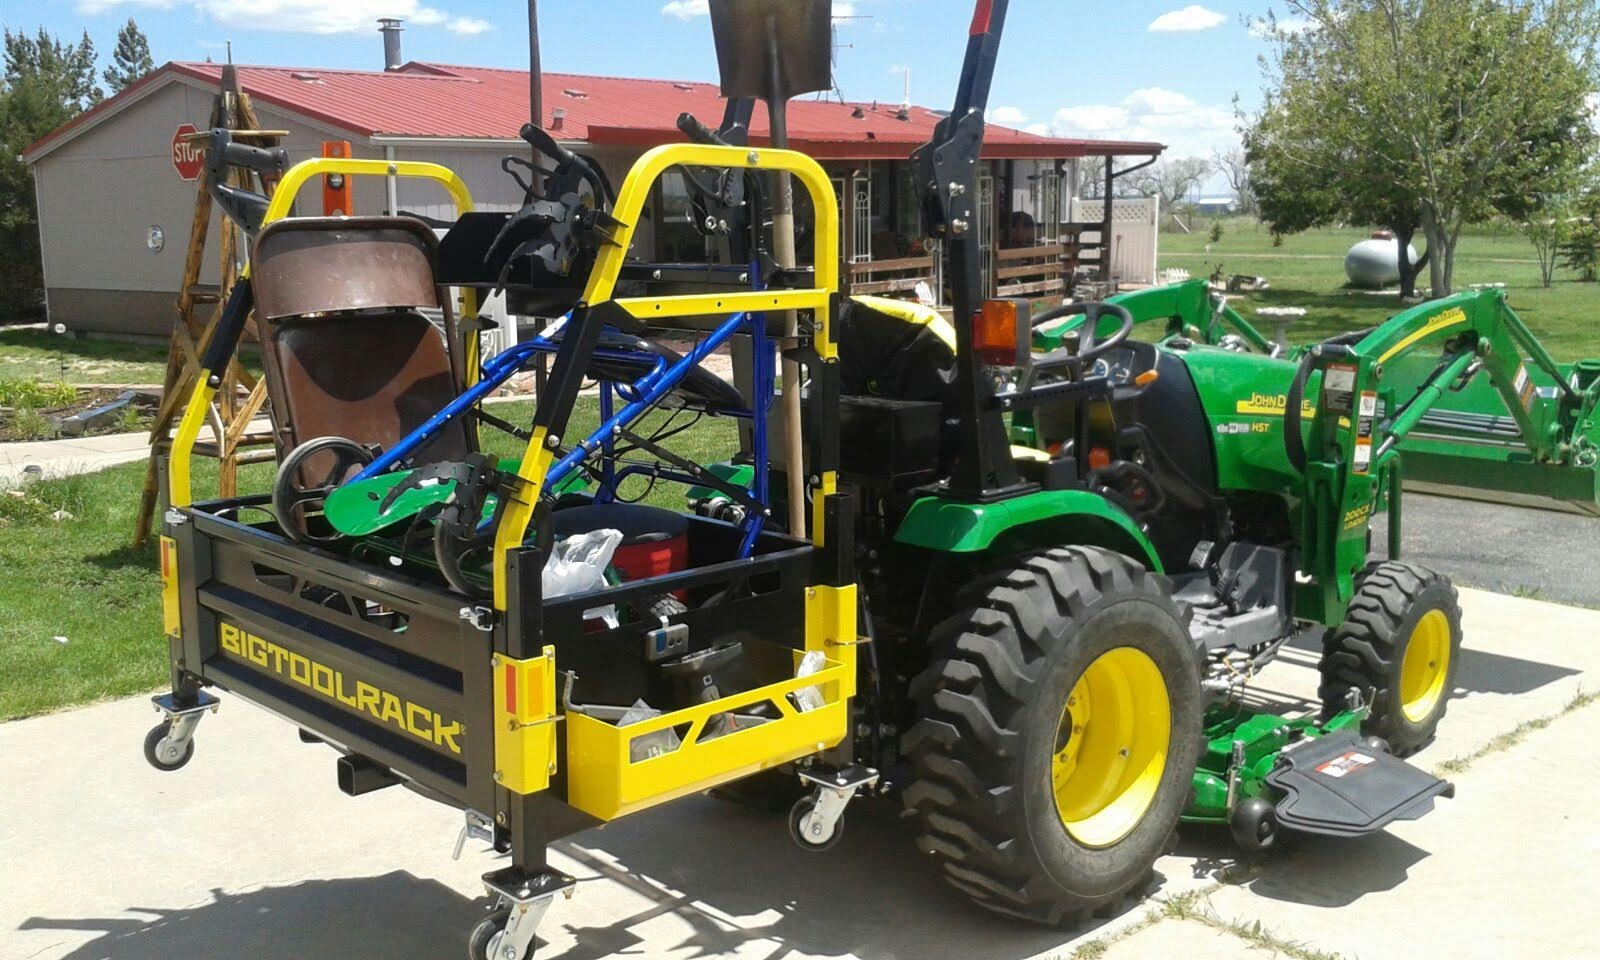 Bigtoolrack on a John Deere 2320